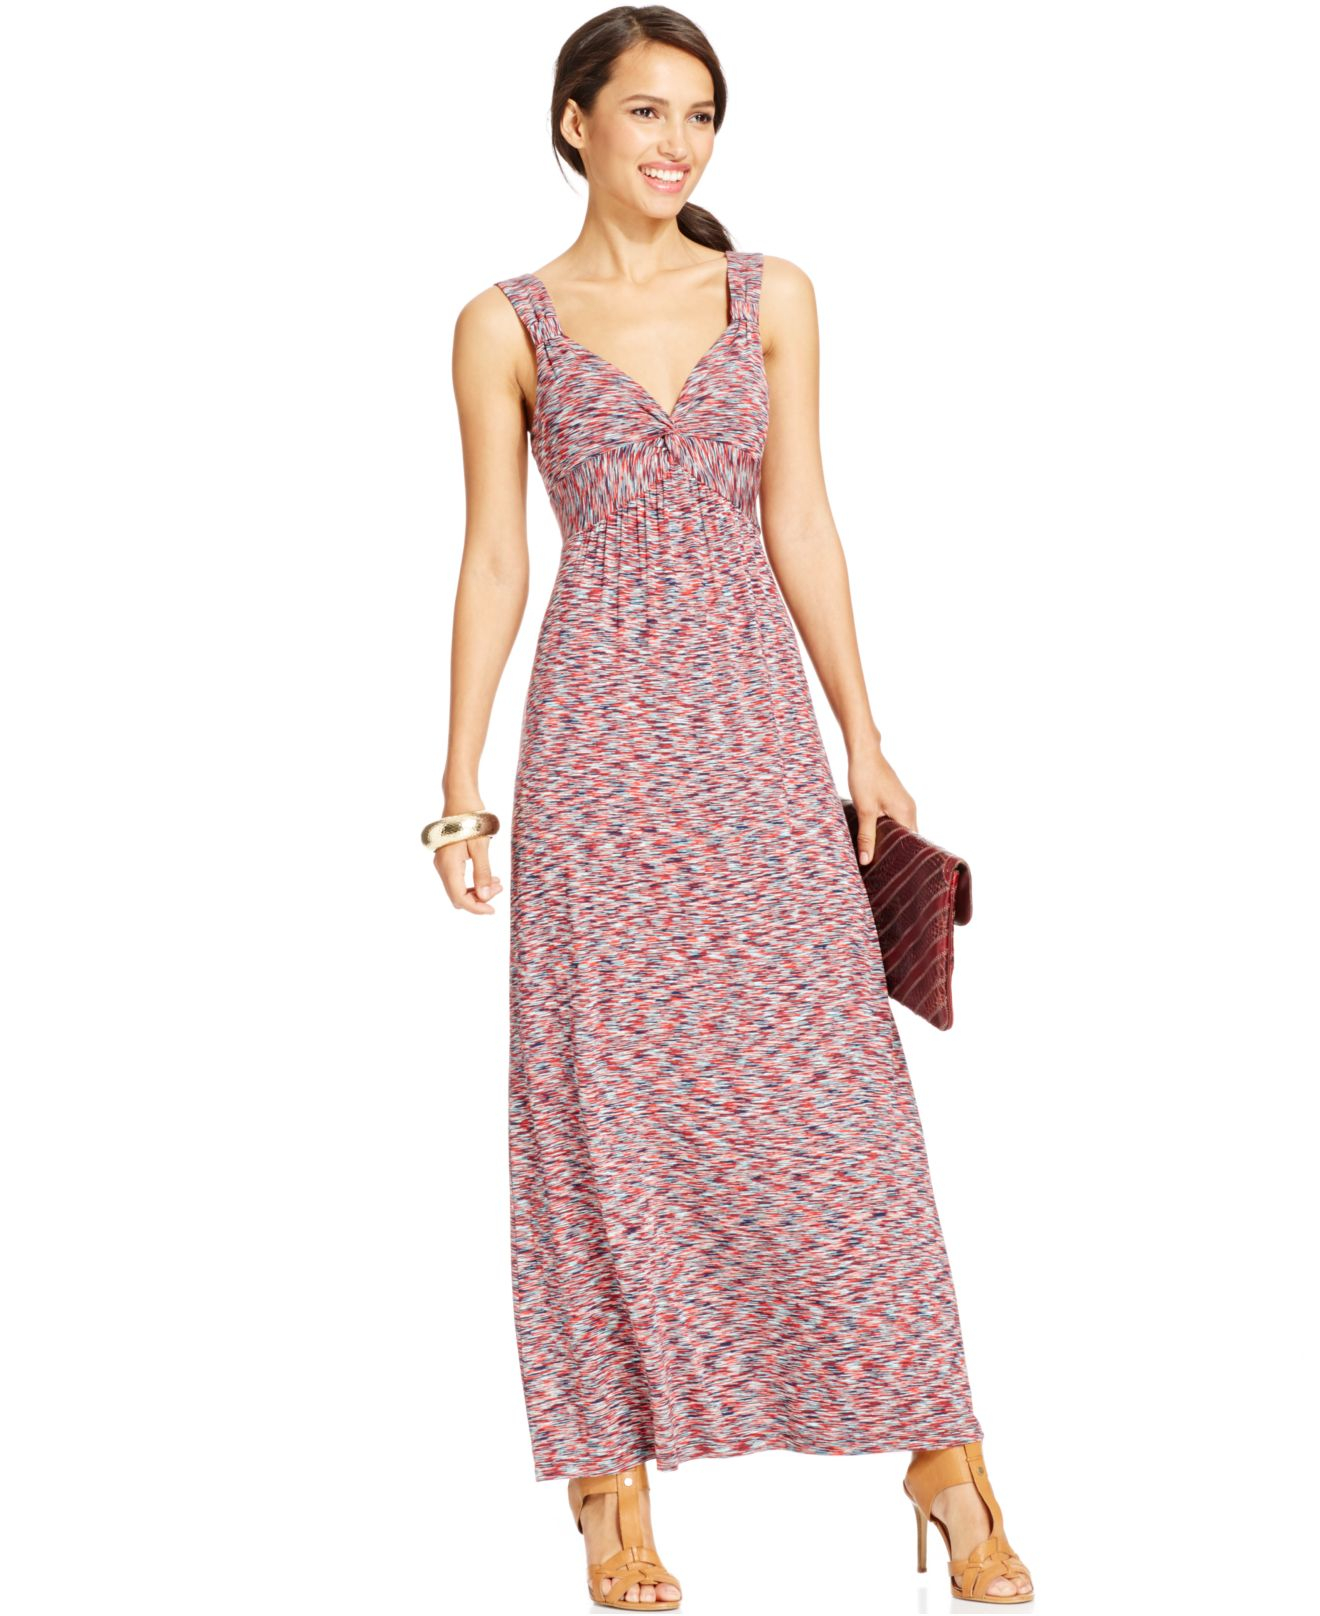 Spense Petite Space-Dye Sleeveless Maxi Dress in Red - Lyst